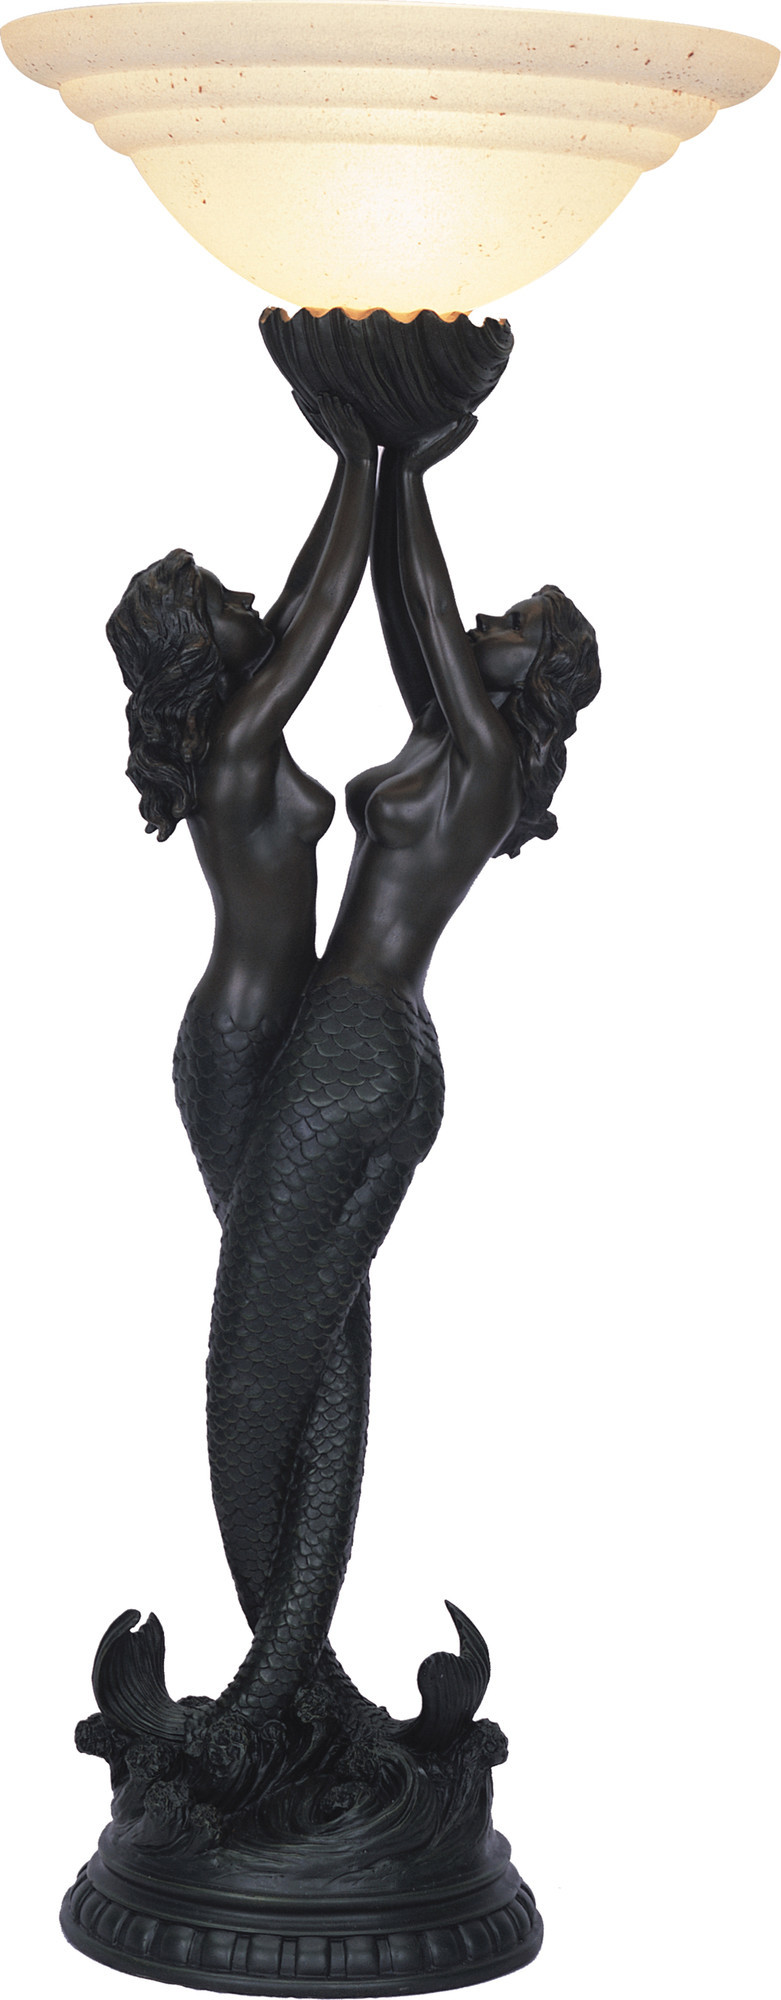 Mermaid table lamp - Sku Ggbr1661 Twin Mermaid Table Lamp Is Also Sometimes Listed Under The Following Manufacturer Numbers Tl S07903